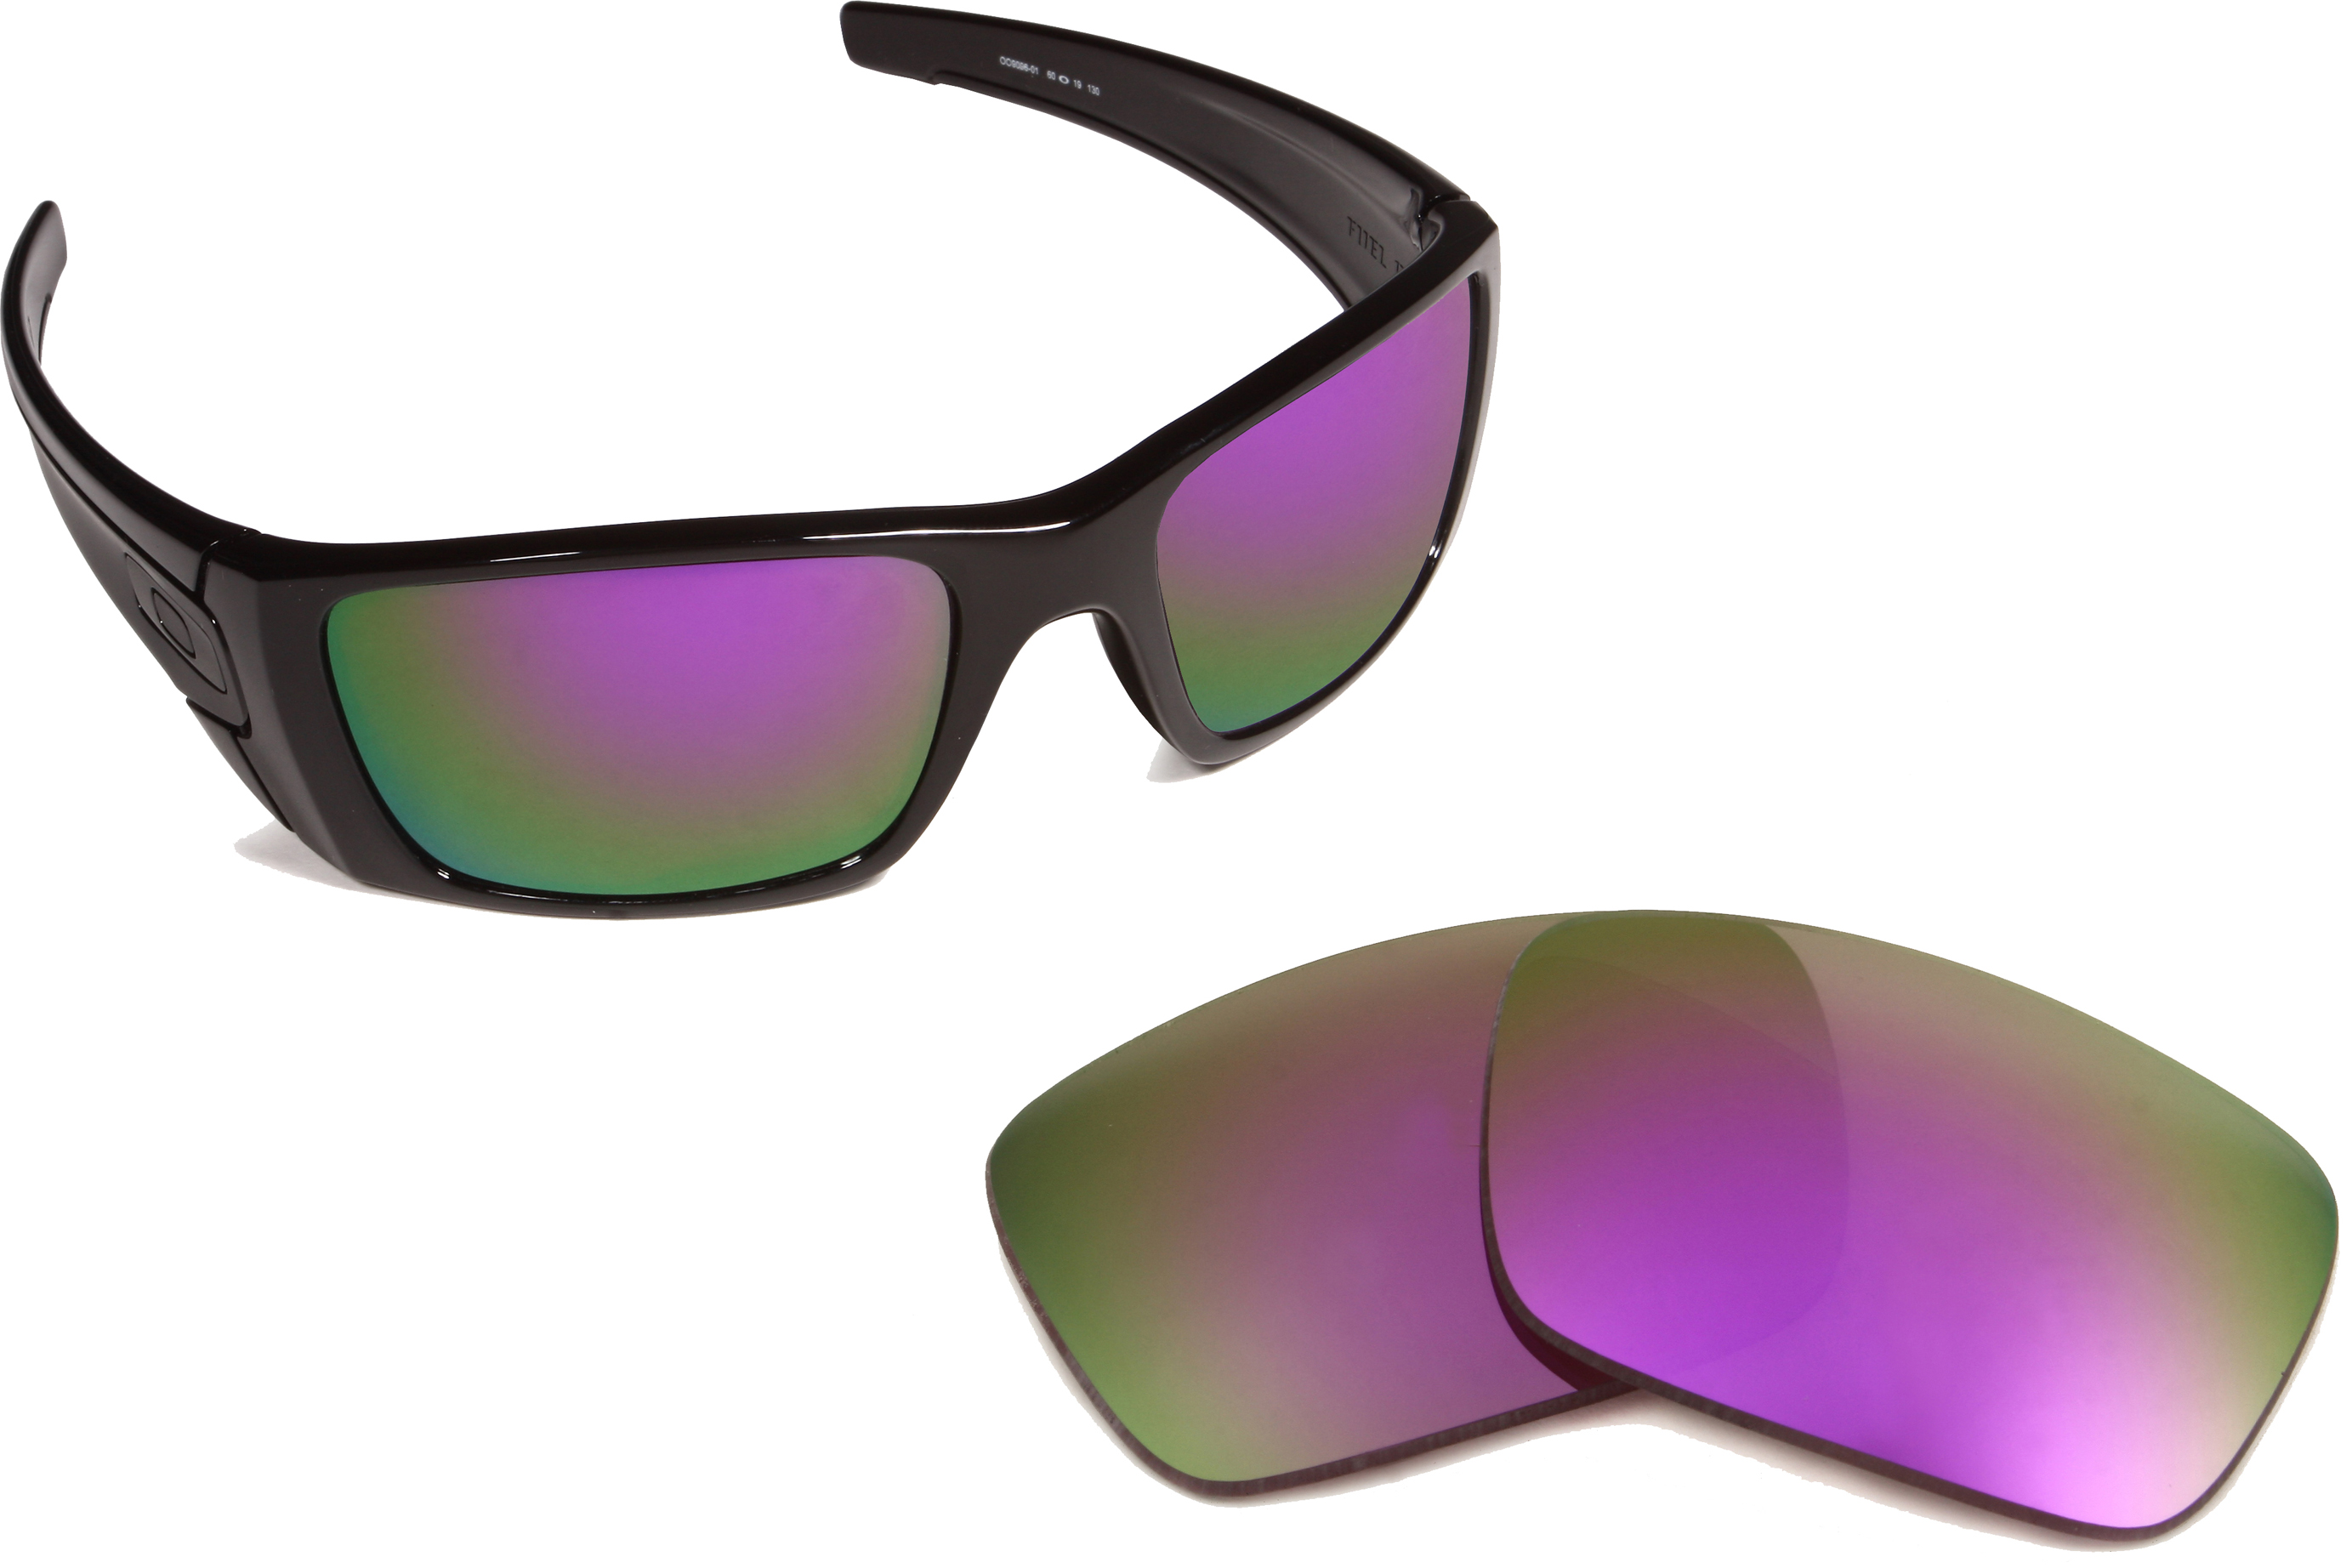 ac8a852b98 Oakley Fuel Cell - Deep Purple Mirror Polarized - Seek Optics